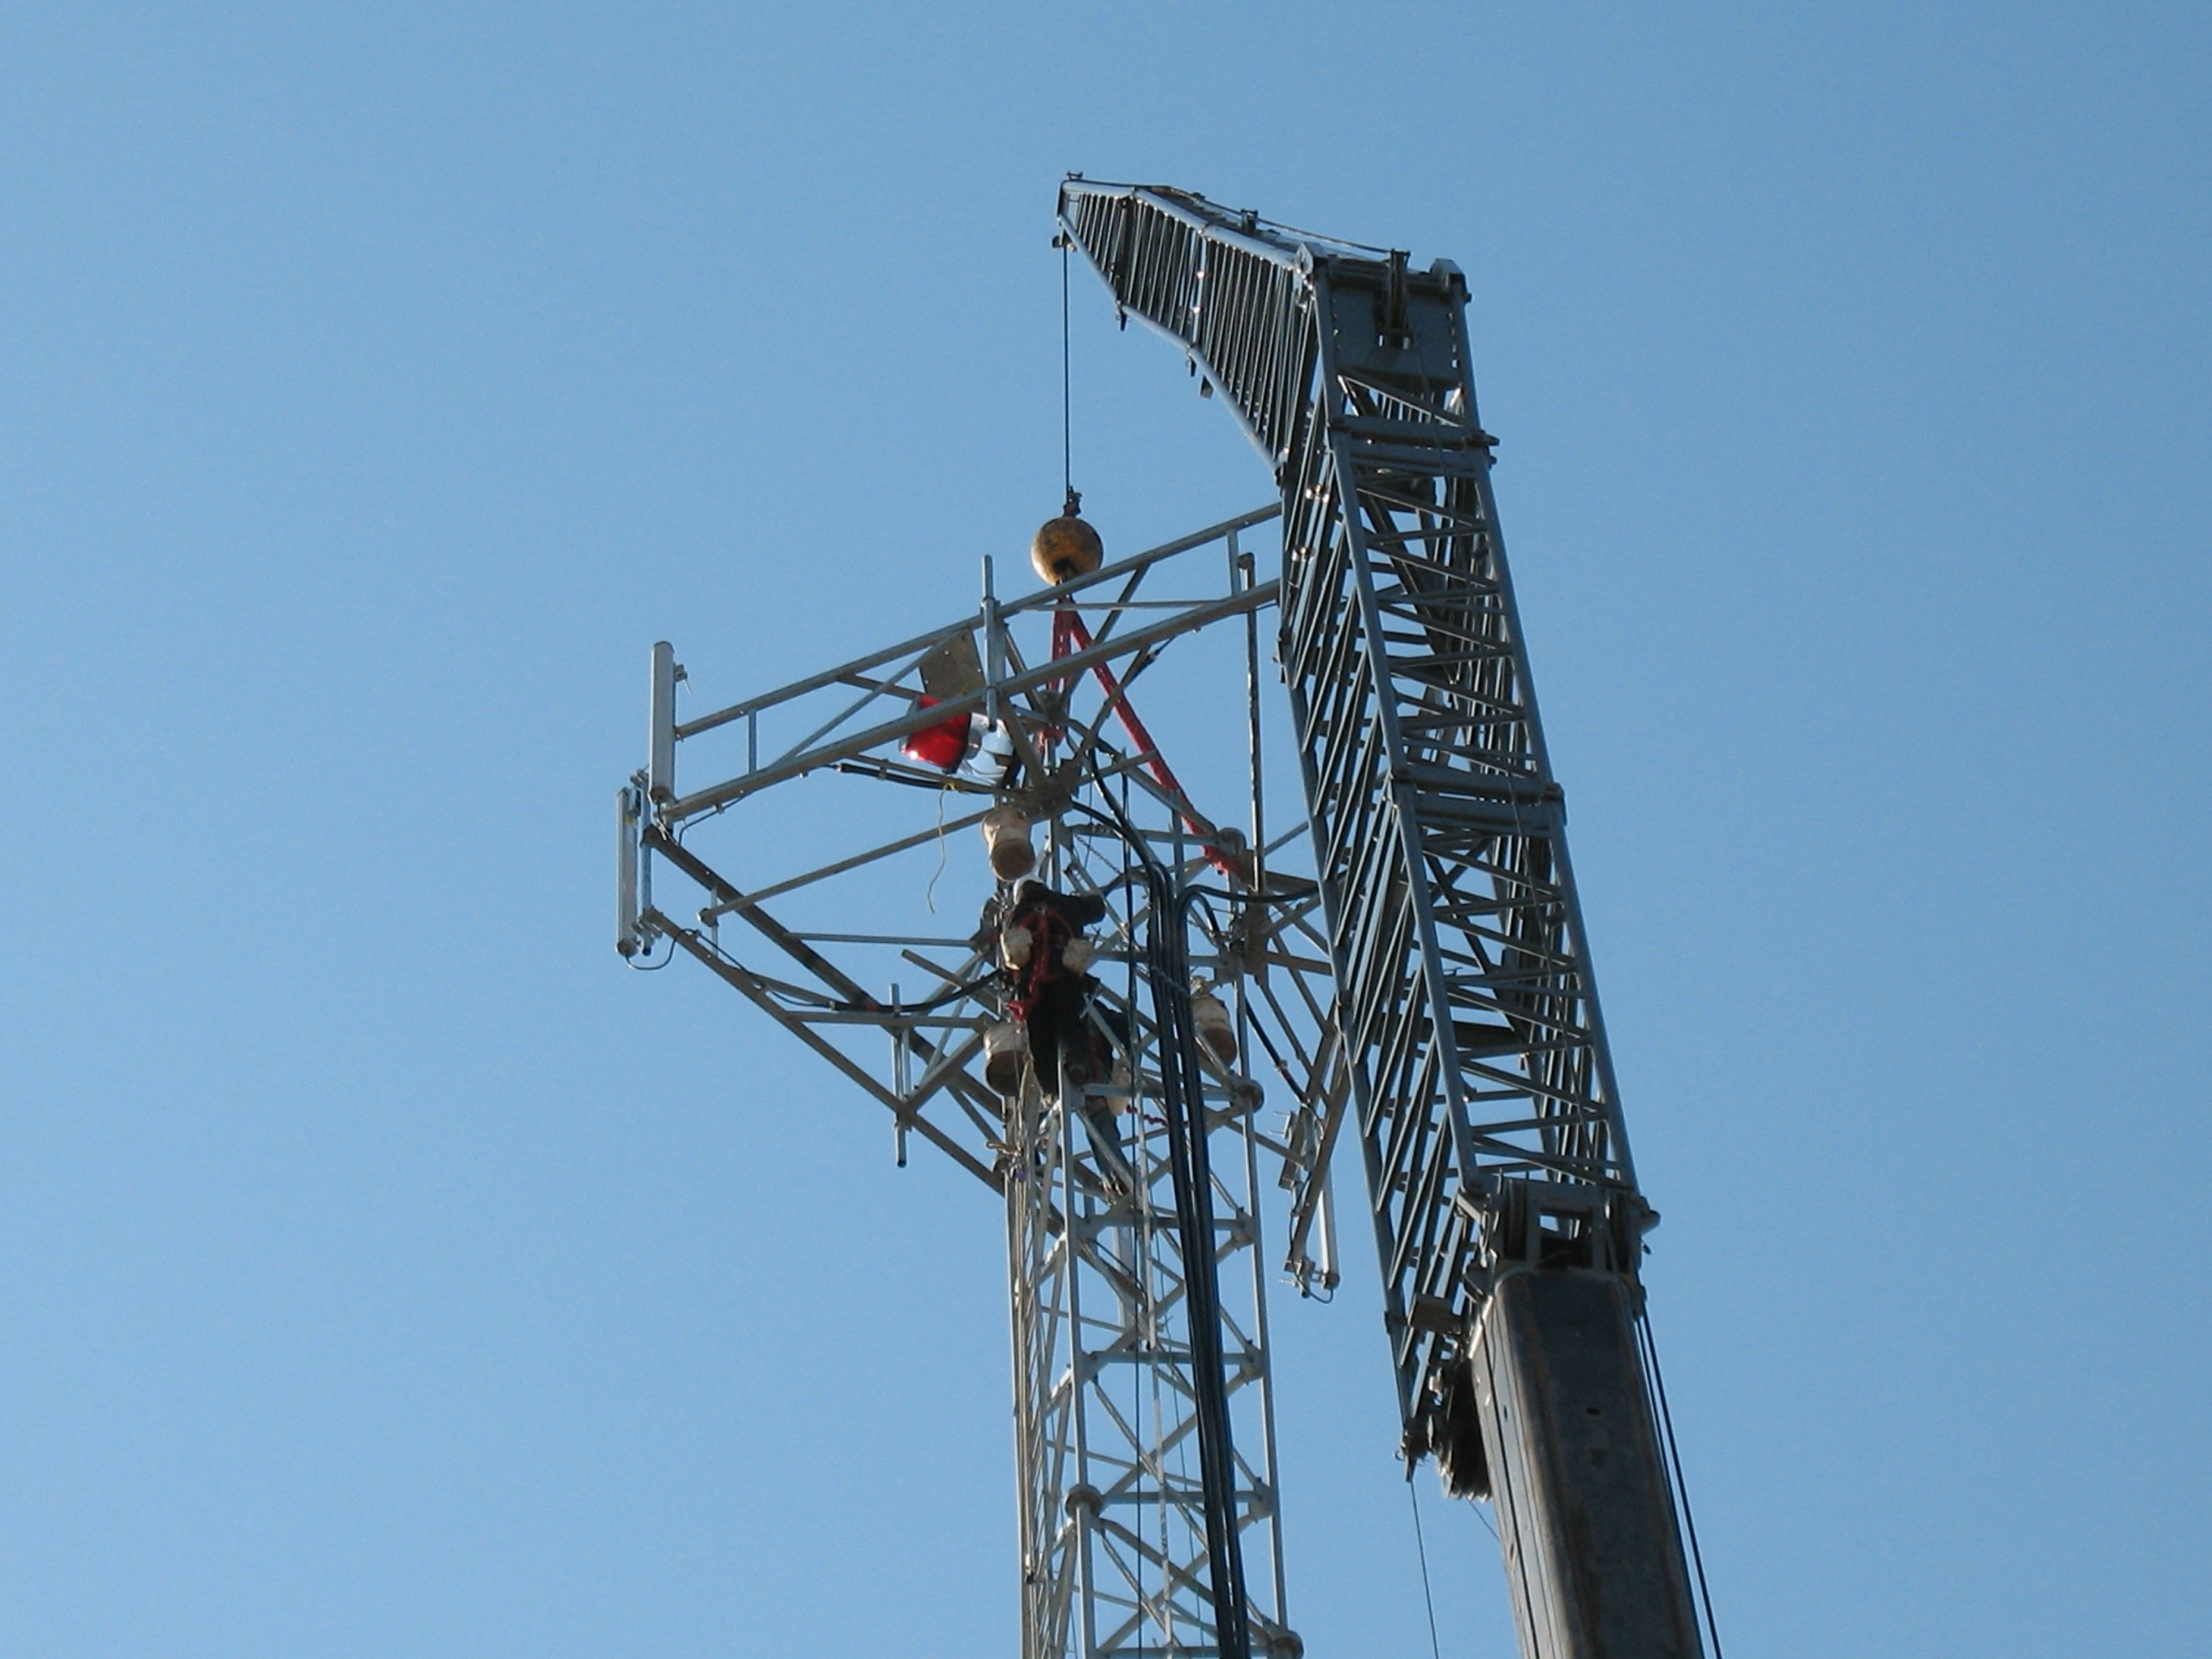 Close-up of 175 pick on a cell tower.